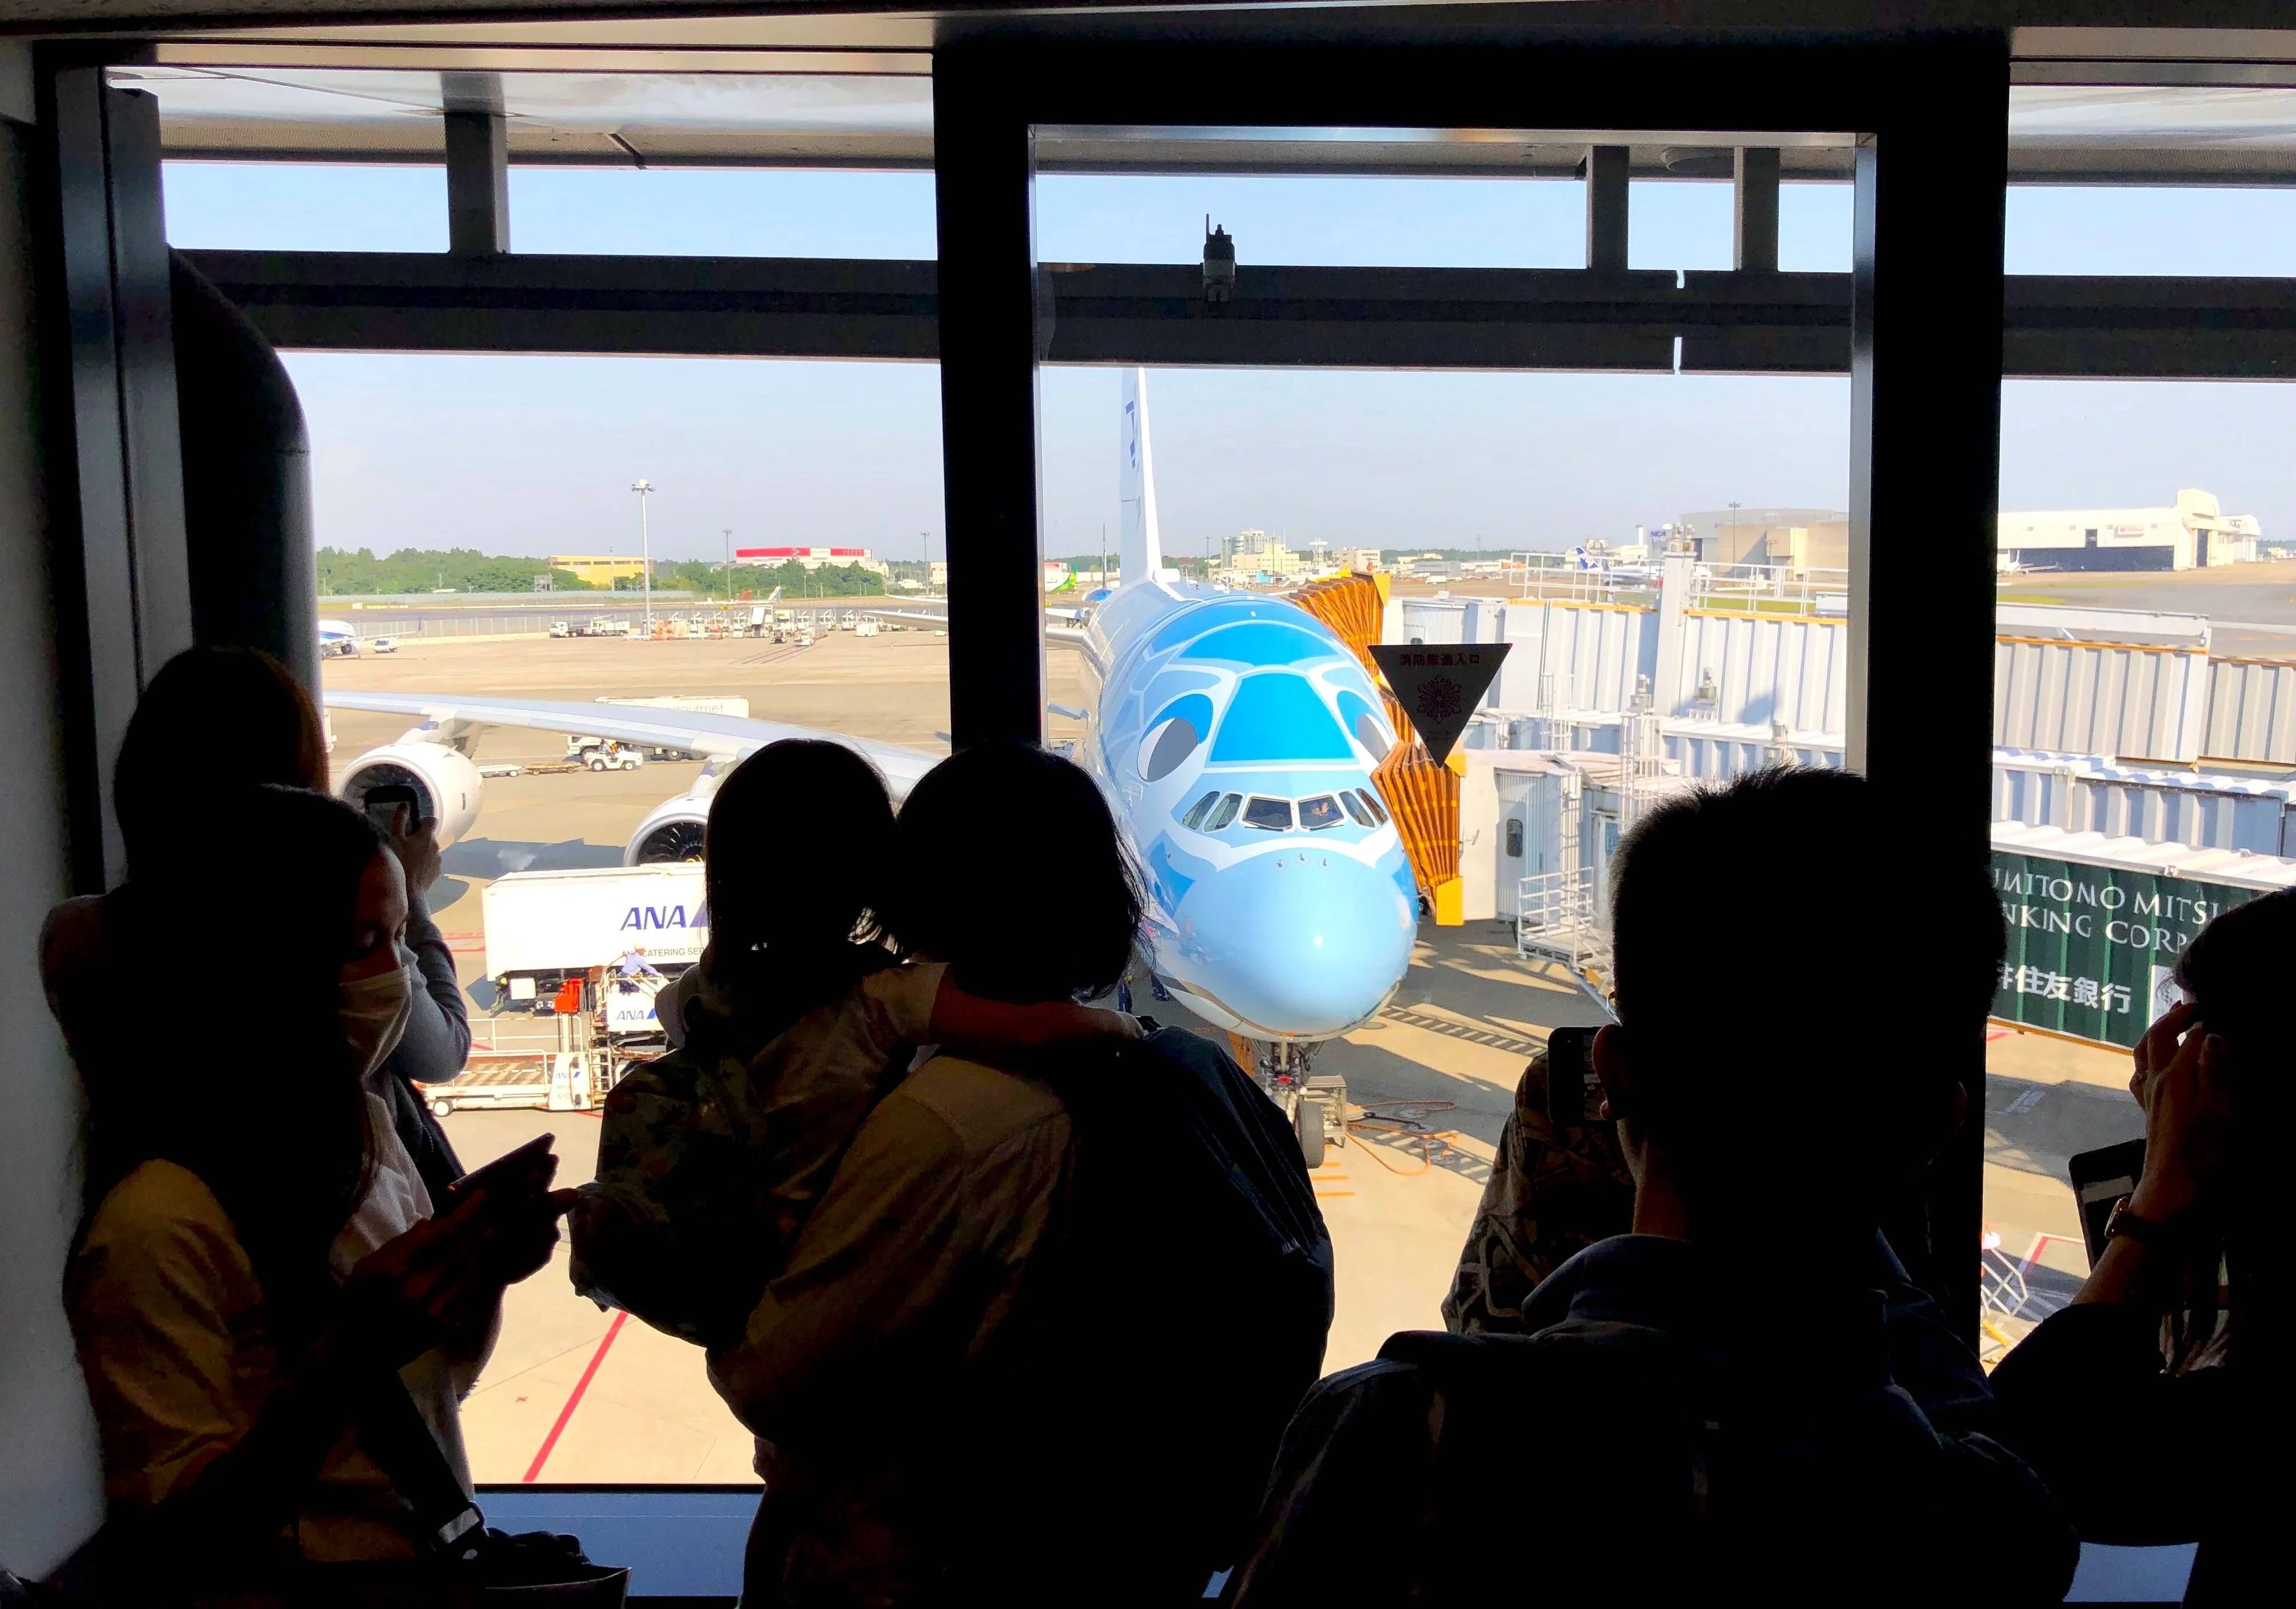 ANA Debuts Airbus A380 to Hawaii; Last-Ever Inaugural for Superjumbo Jet?